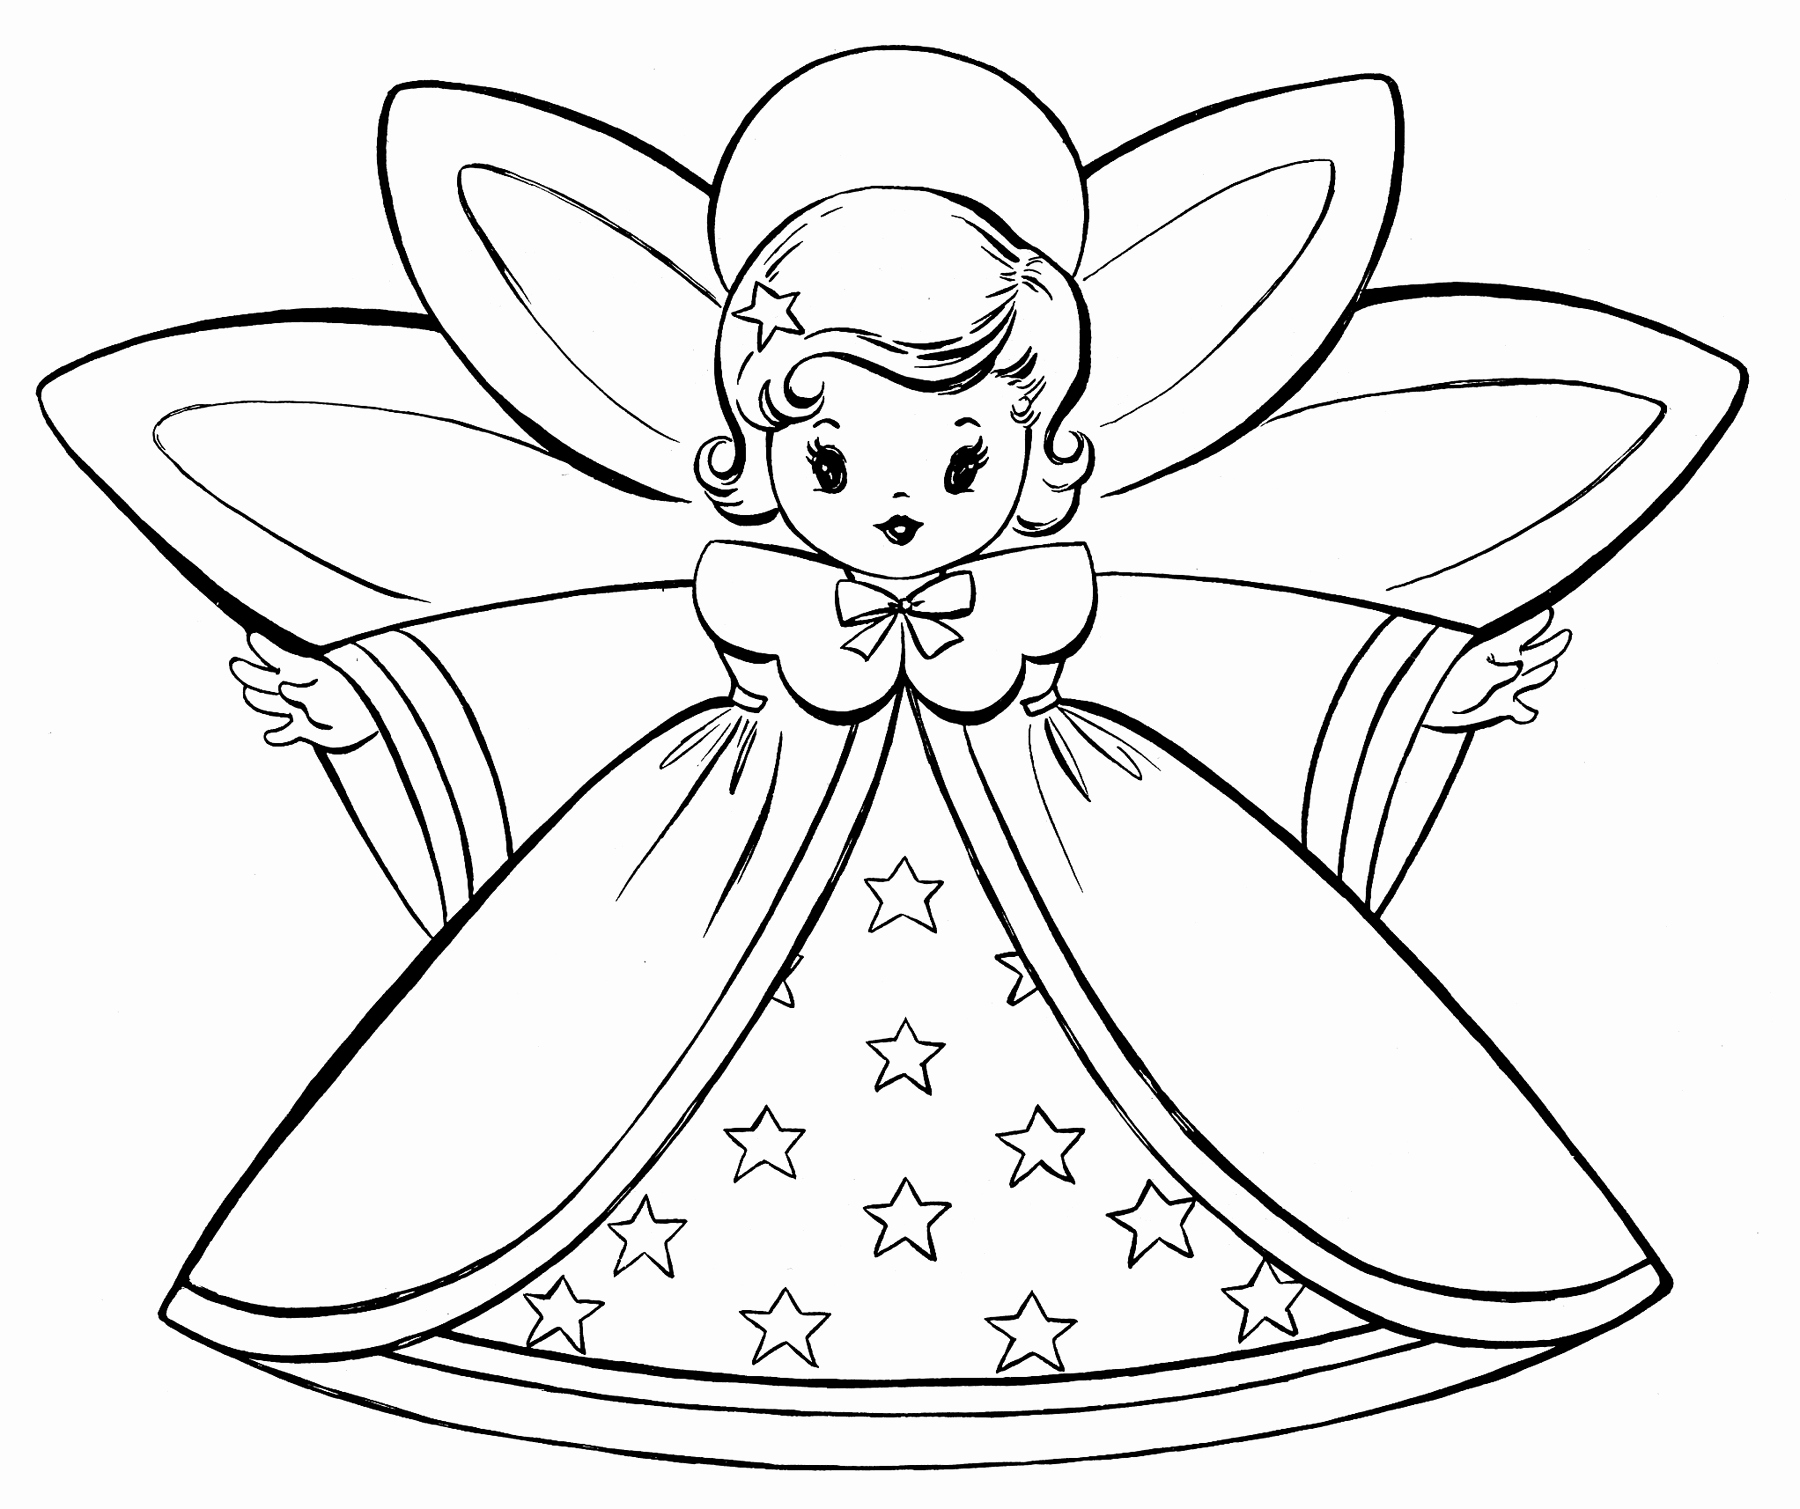 1800x1509 Hello Kitty Coloring Pages Free Printable Beautiful Value Cristmas